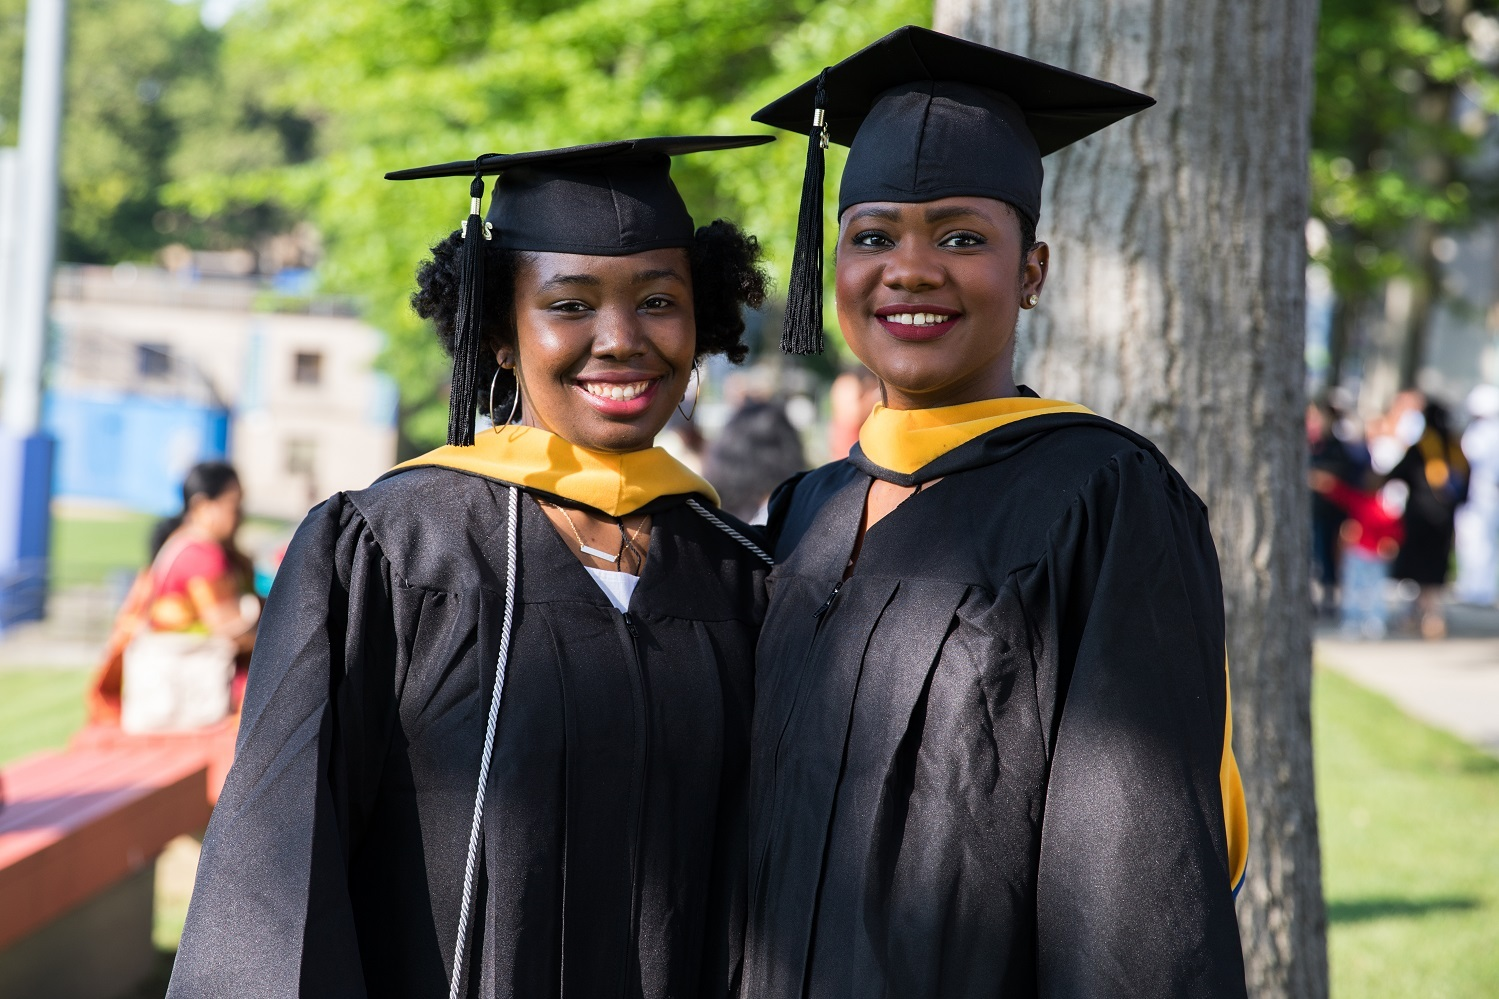 St-Georges-Society-Lehman-College-Commencement-2017-Scholars (11) - Copy.jpg